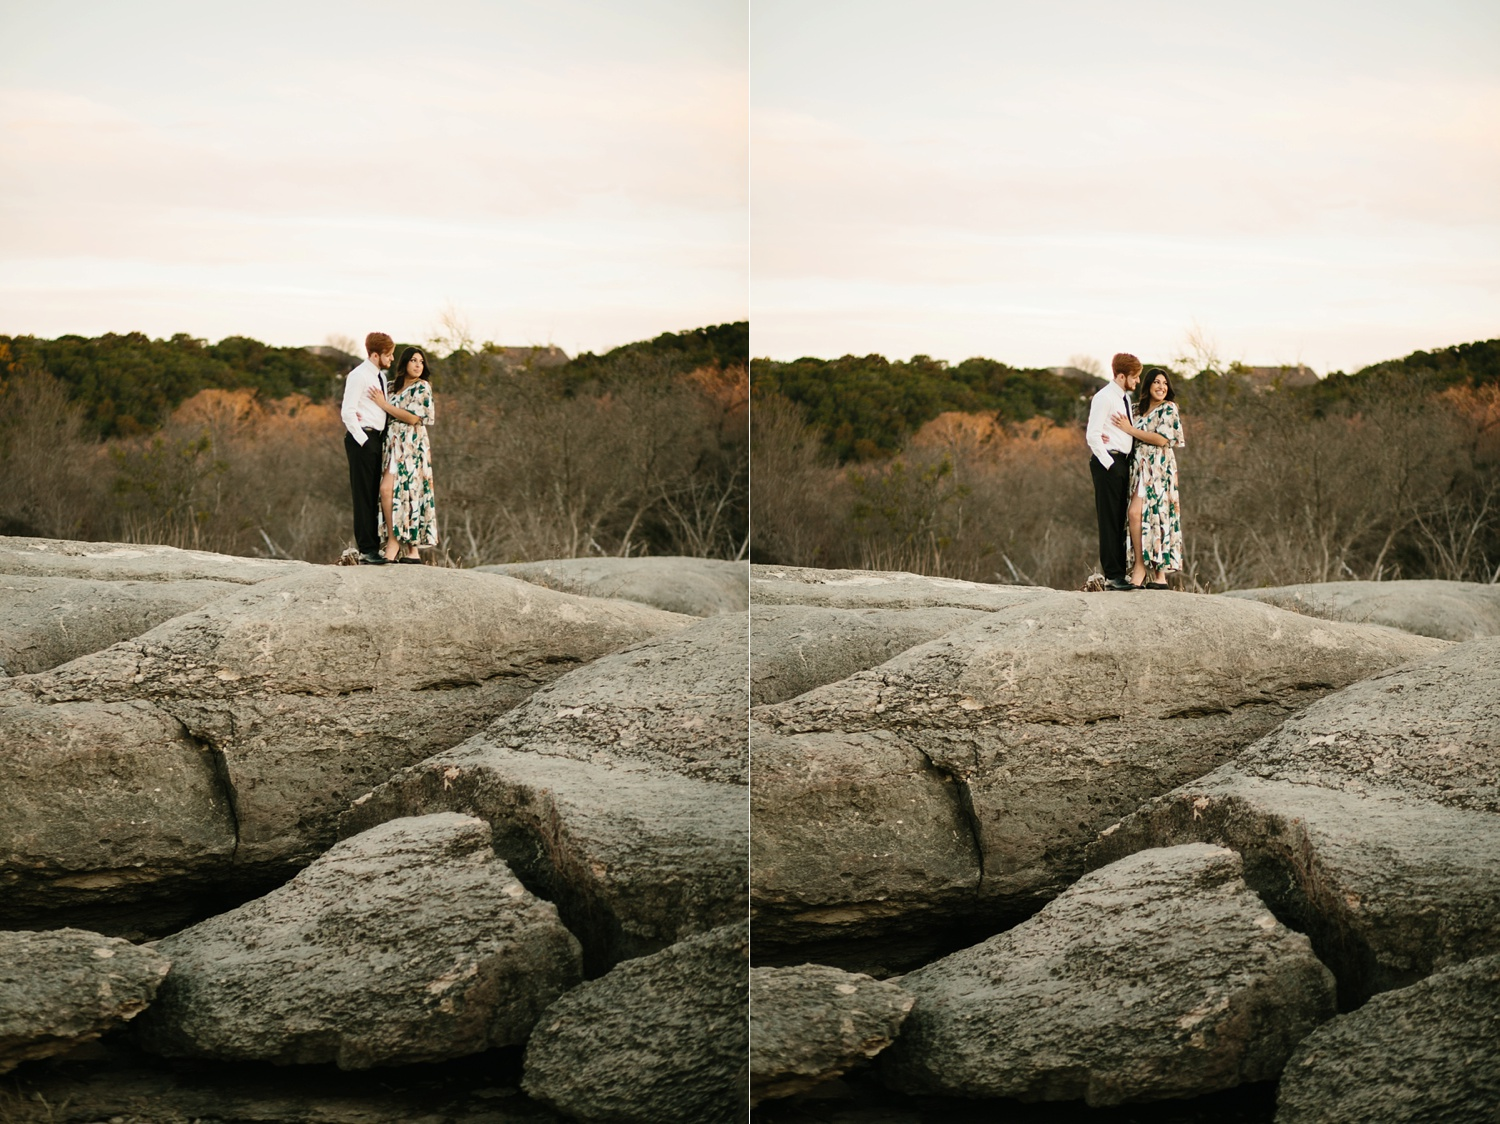 Grant + Lysette - floral dress engagement session by North Texas Wedding Photographer Rachel Meagan Photography086